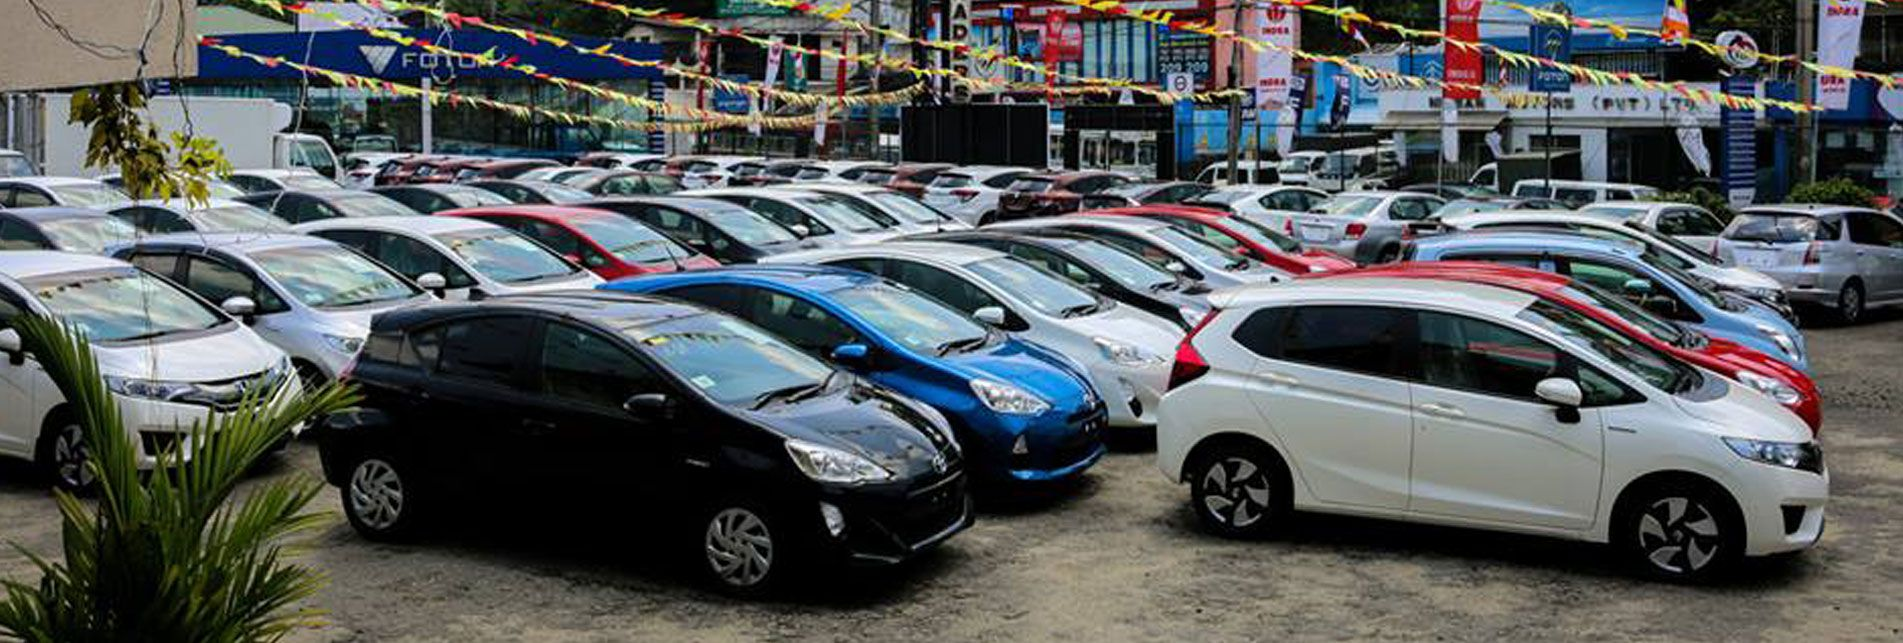 car sales sri lanka Car, Cars for sale, Motor car